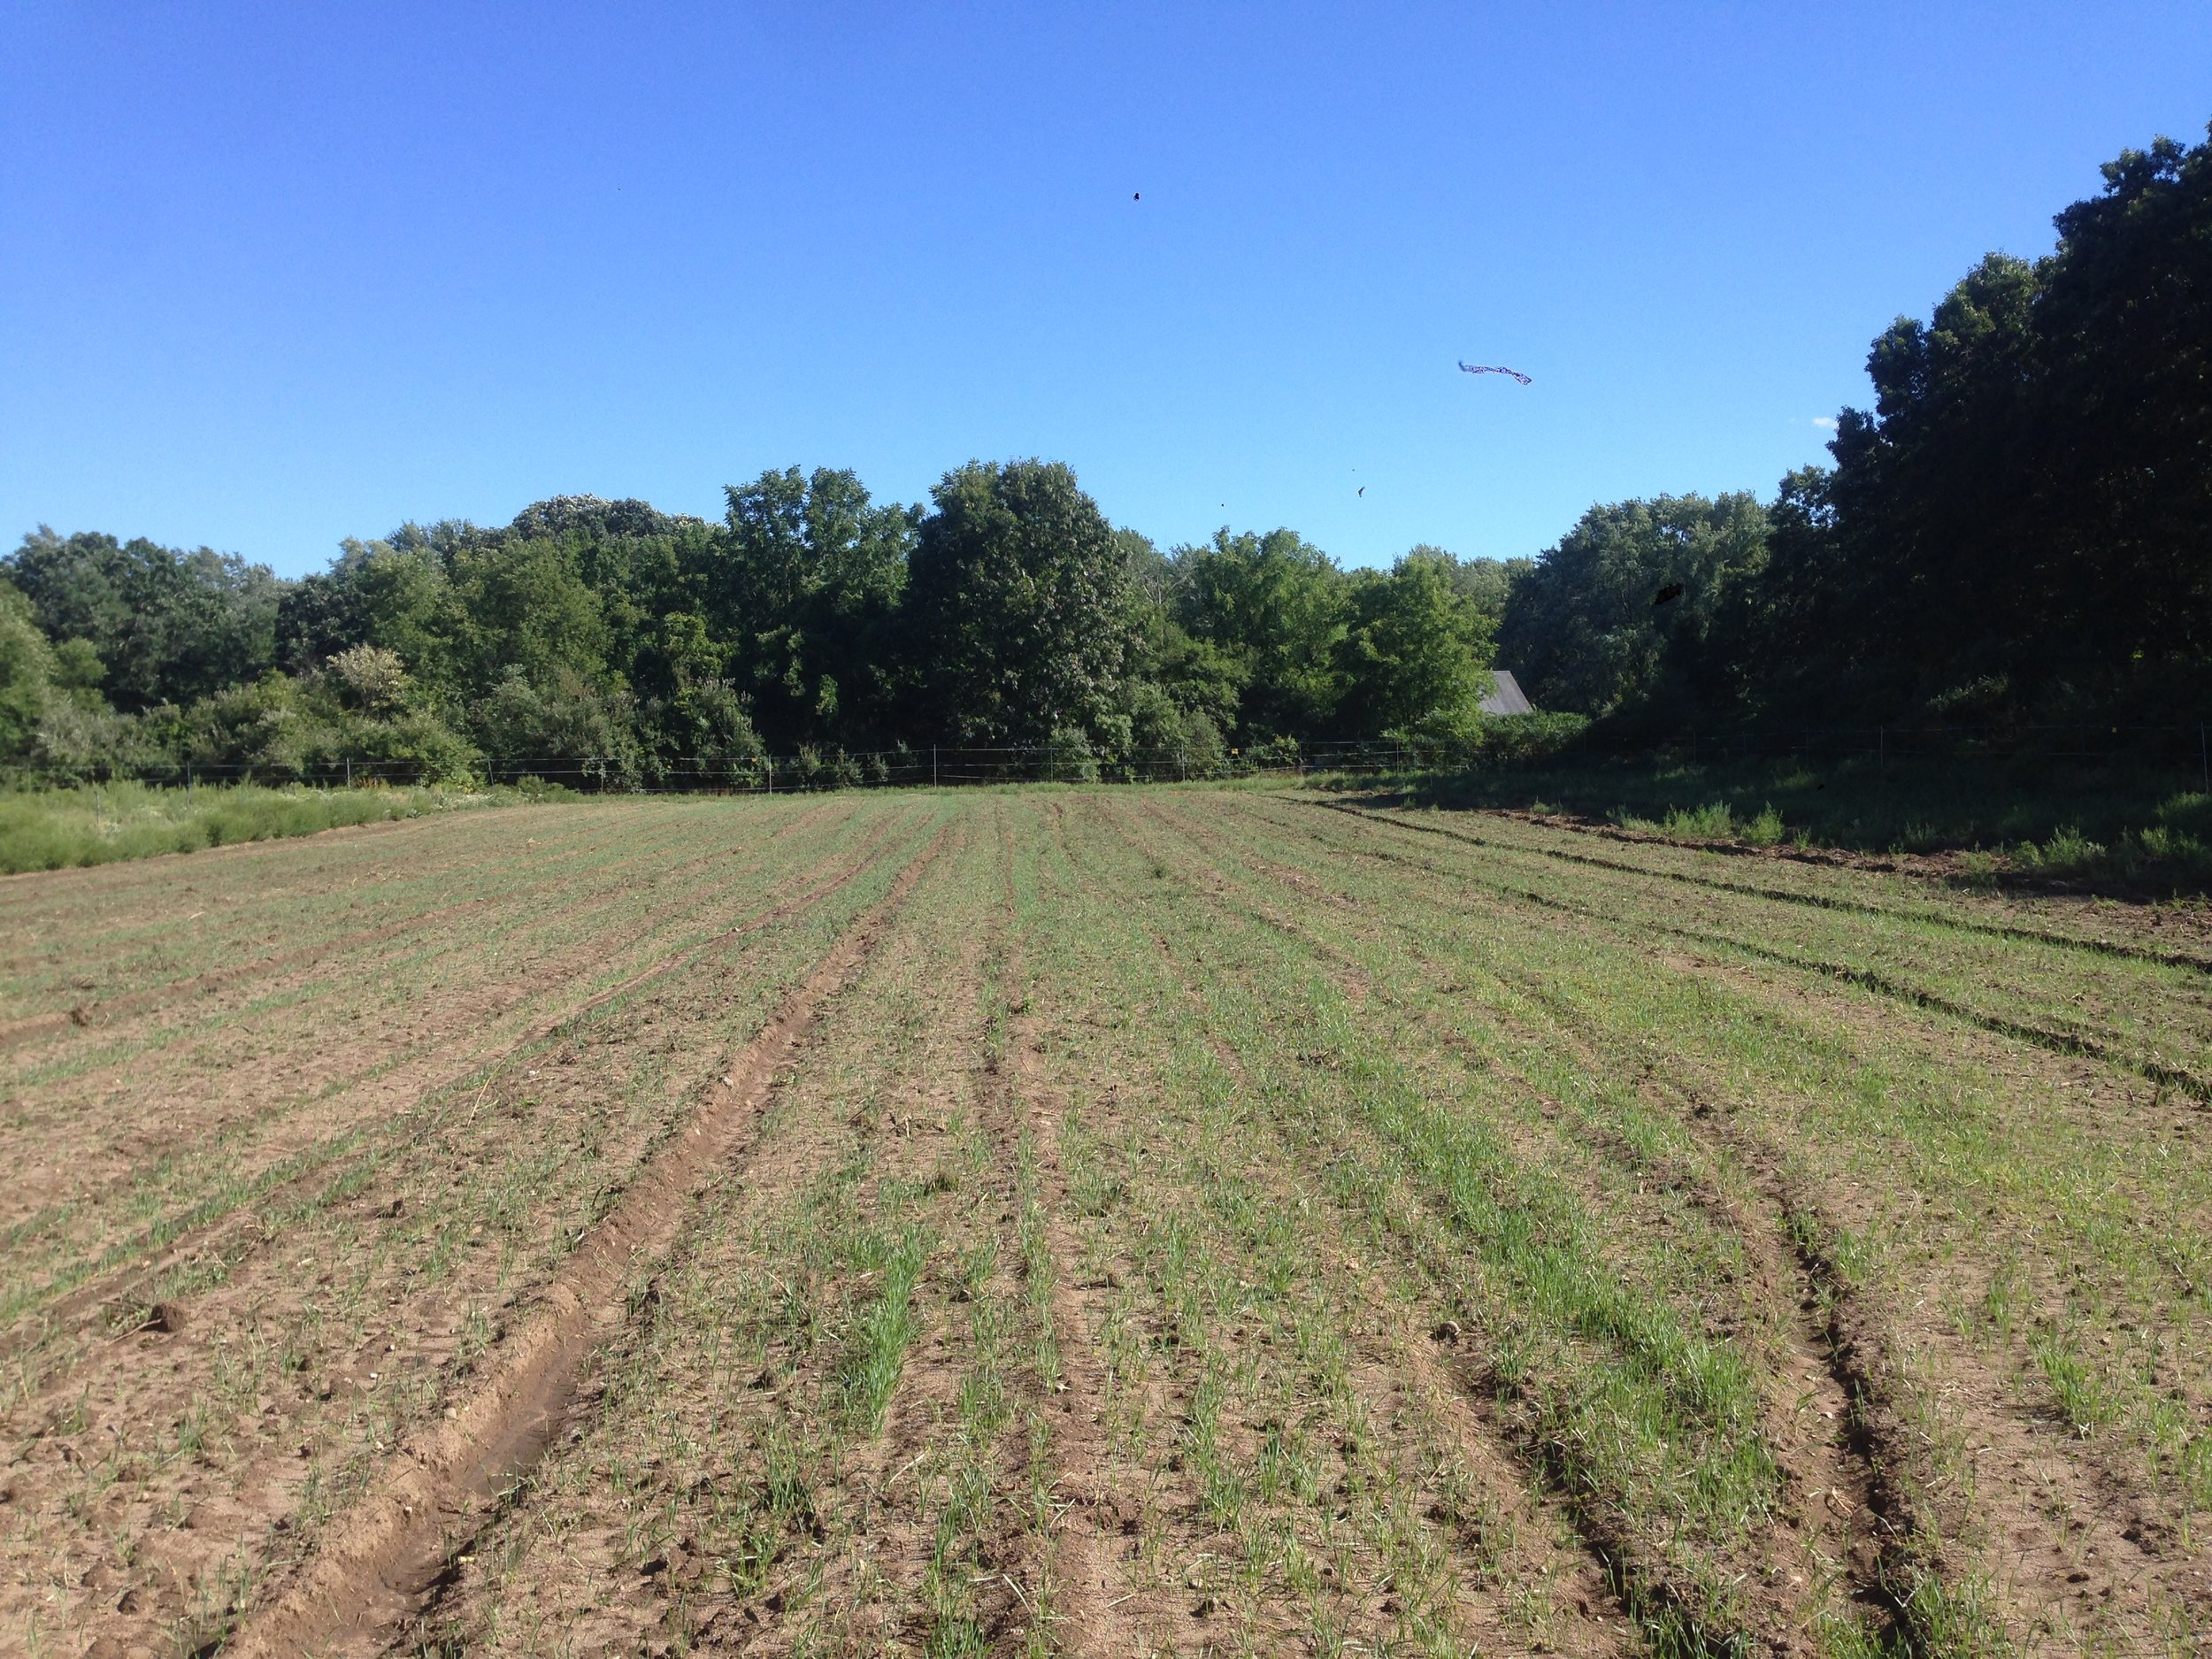 Cover crops triticale and peas beginning to grow where spring roots were harvested this season!